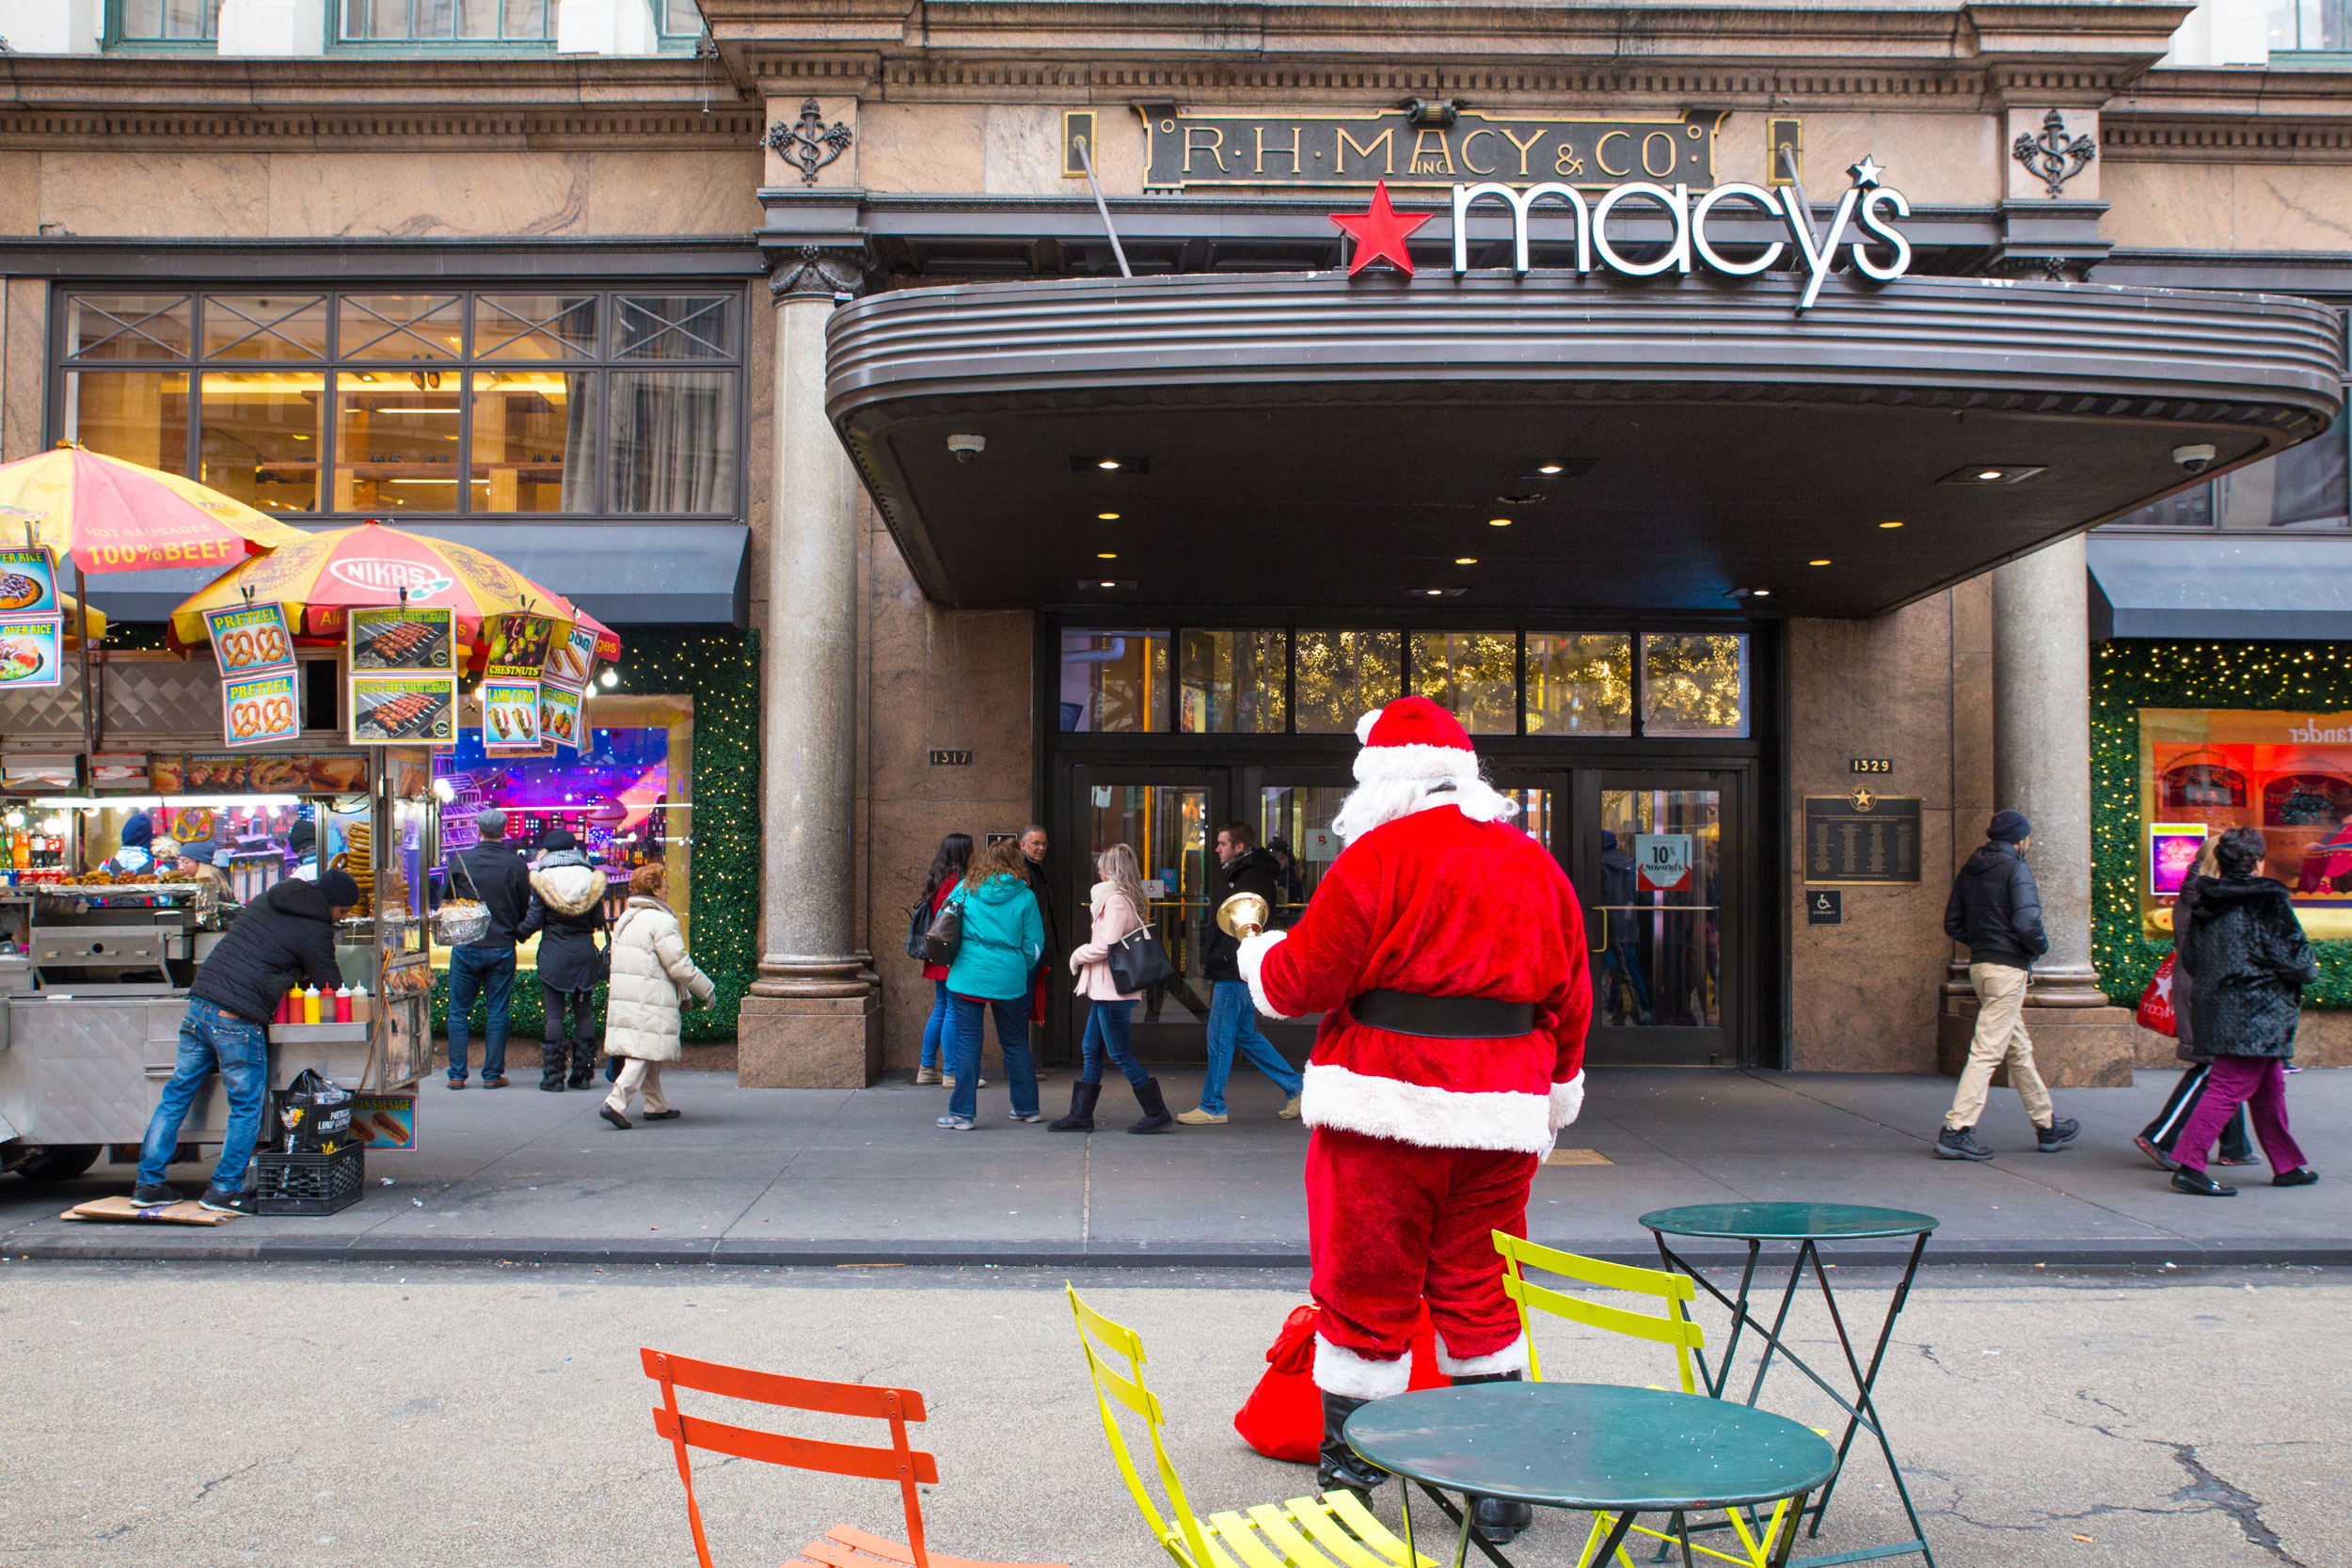 Trending: Macy's cuts Santa, Jay-Z debuts pot brand and cereal sales spike